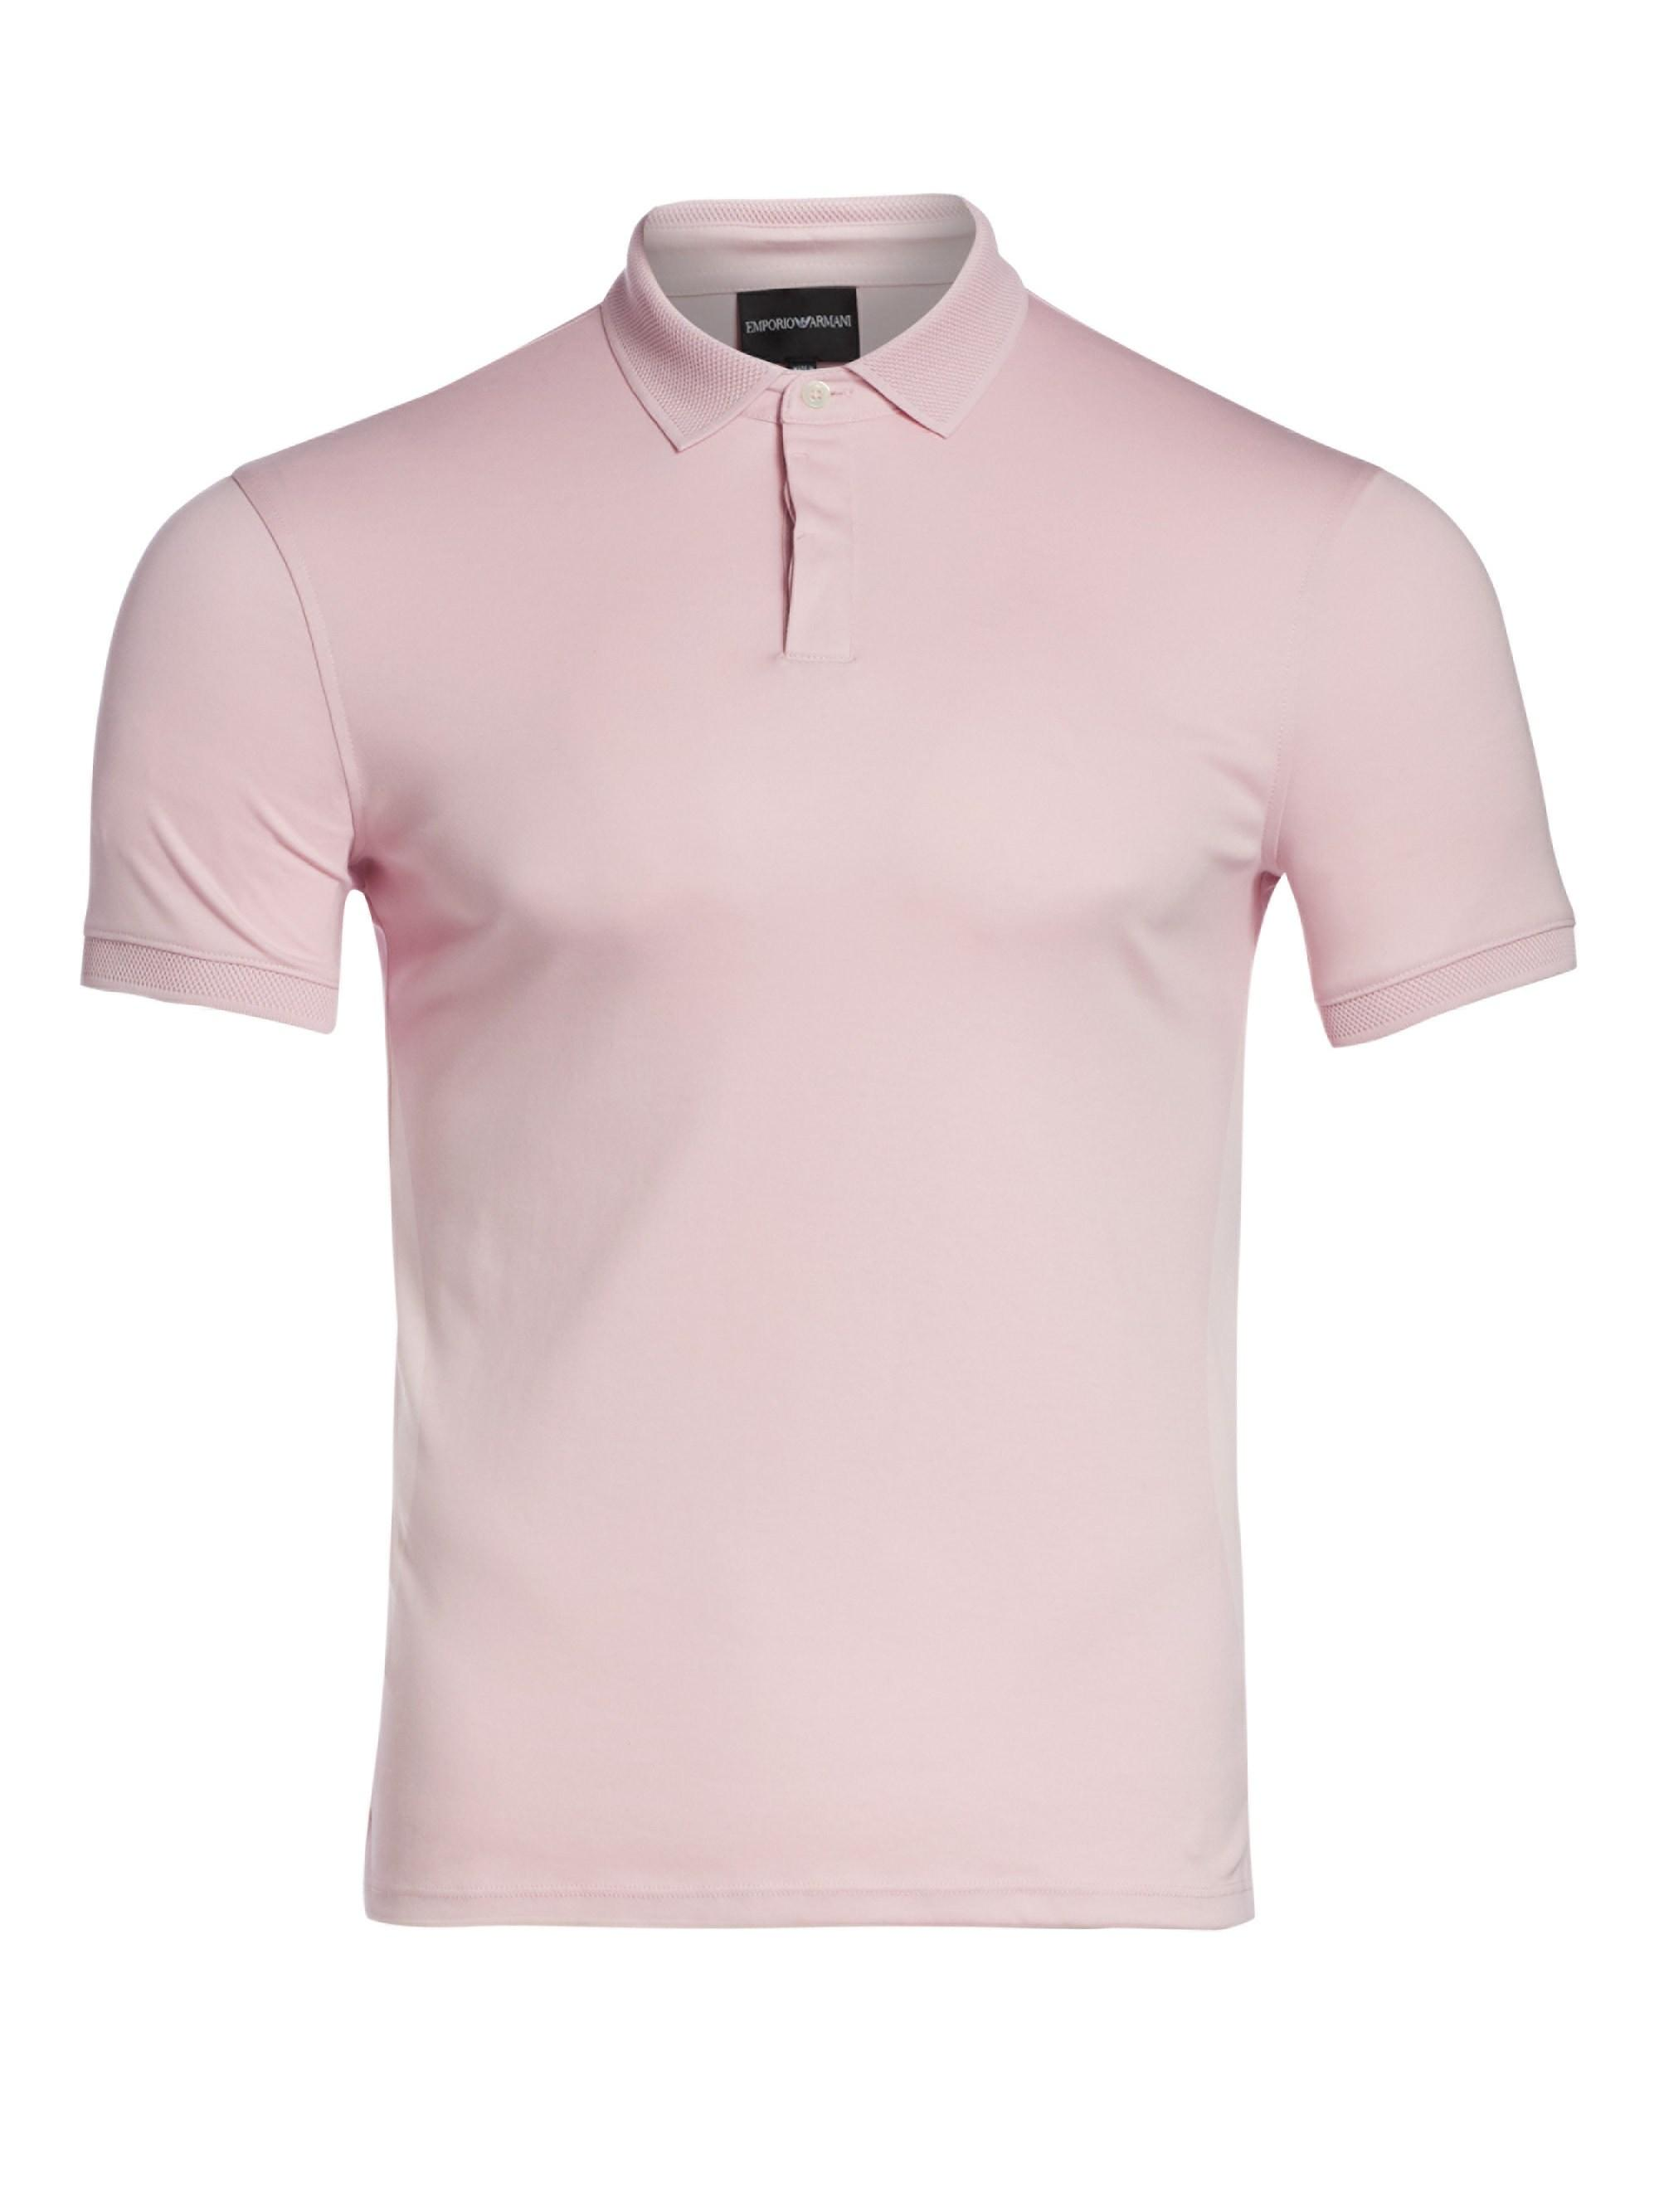 8d6a4549 Lyst - Emporio Armani Men's Pique Polo Shirt - Pink - Size Xxxl in ...